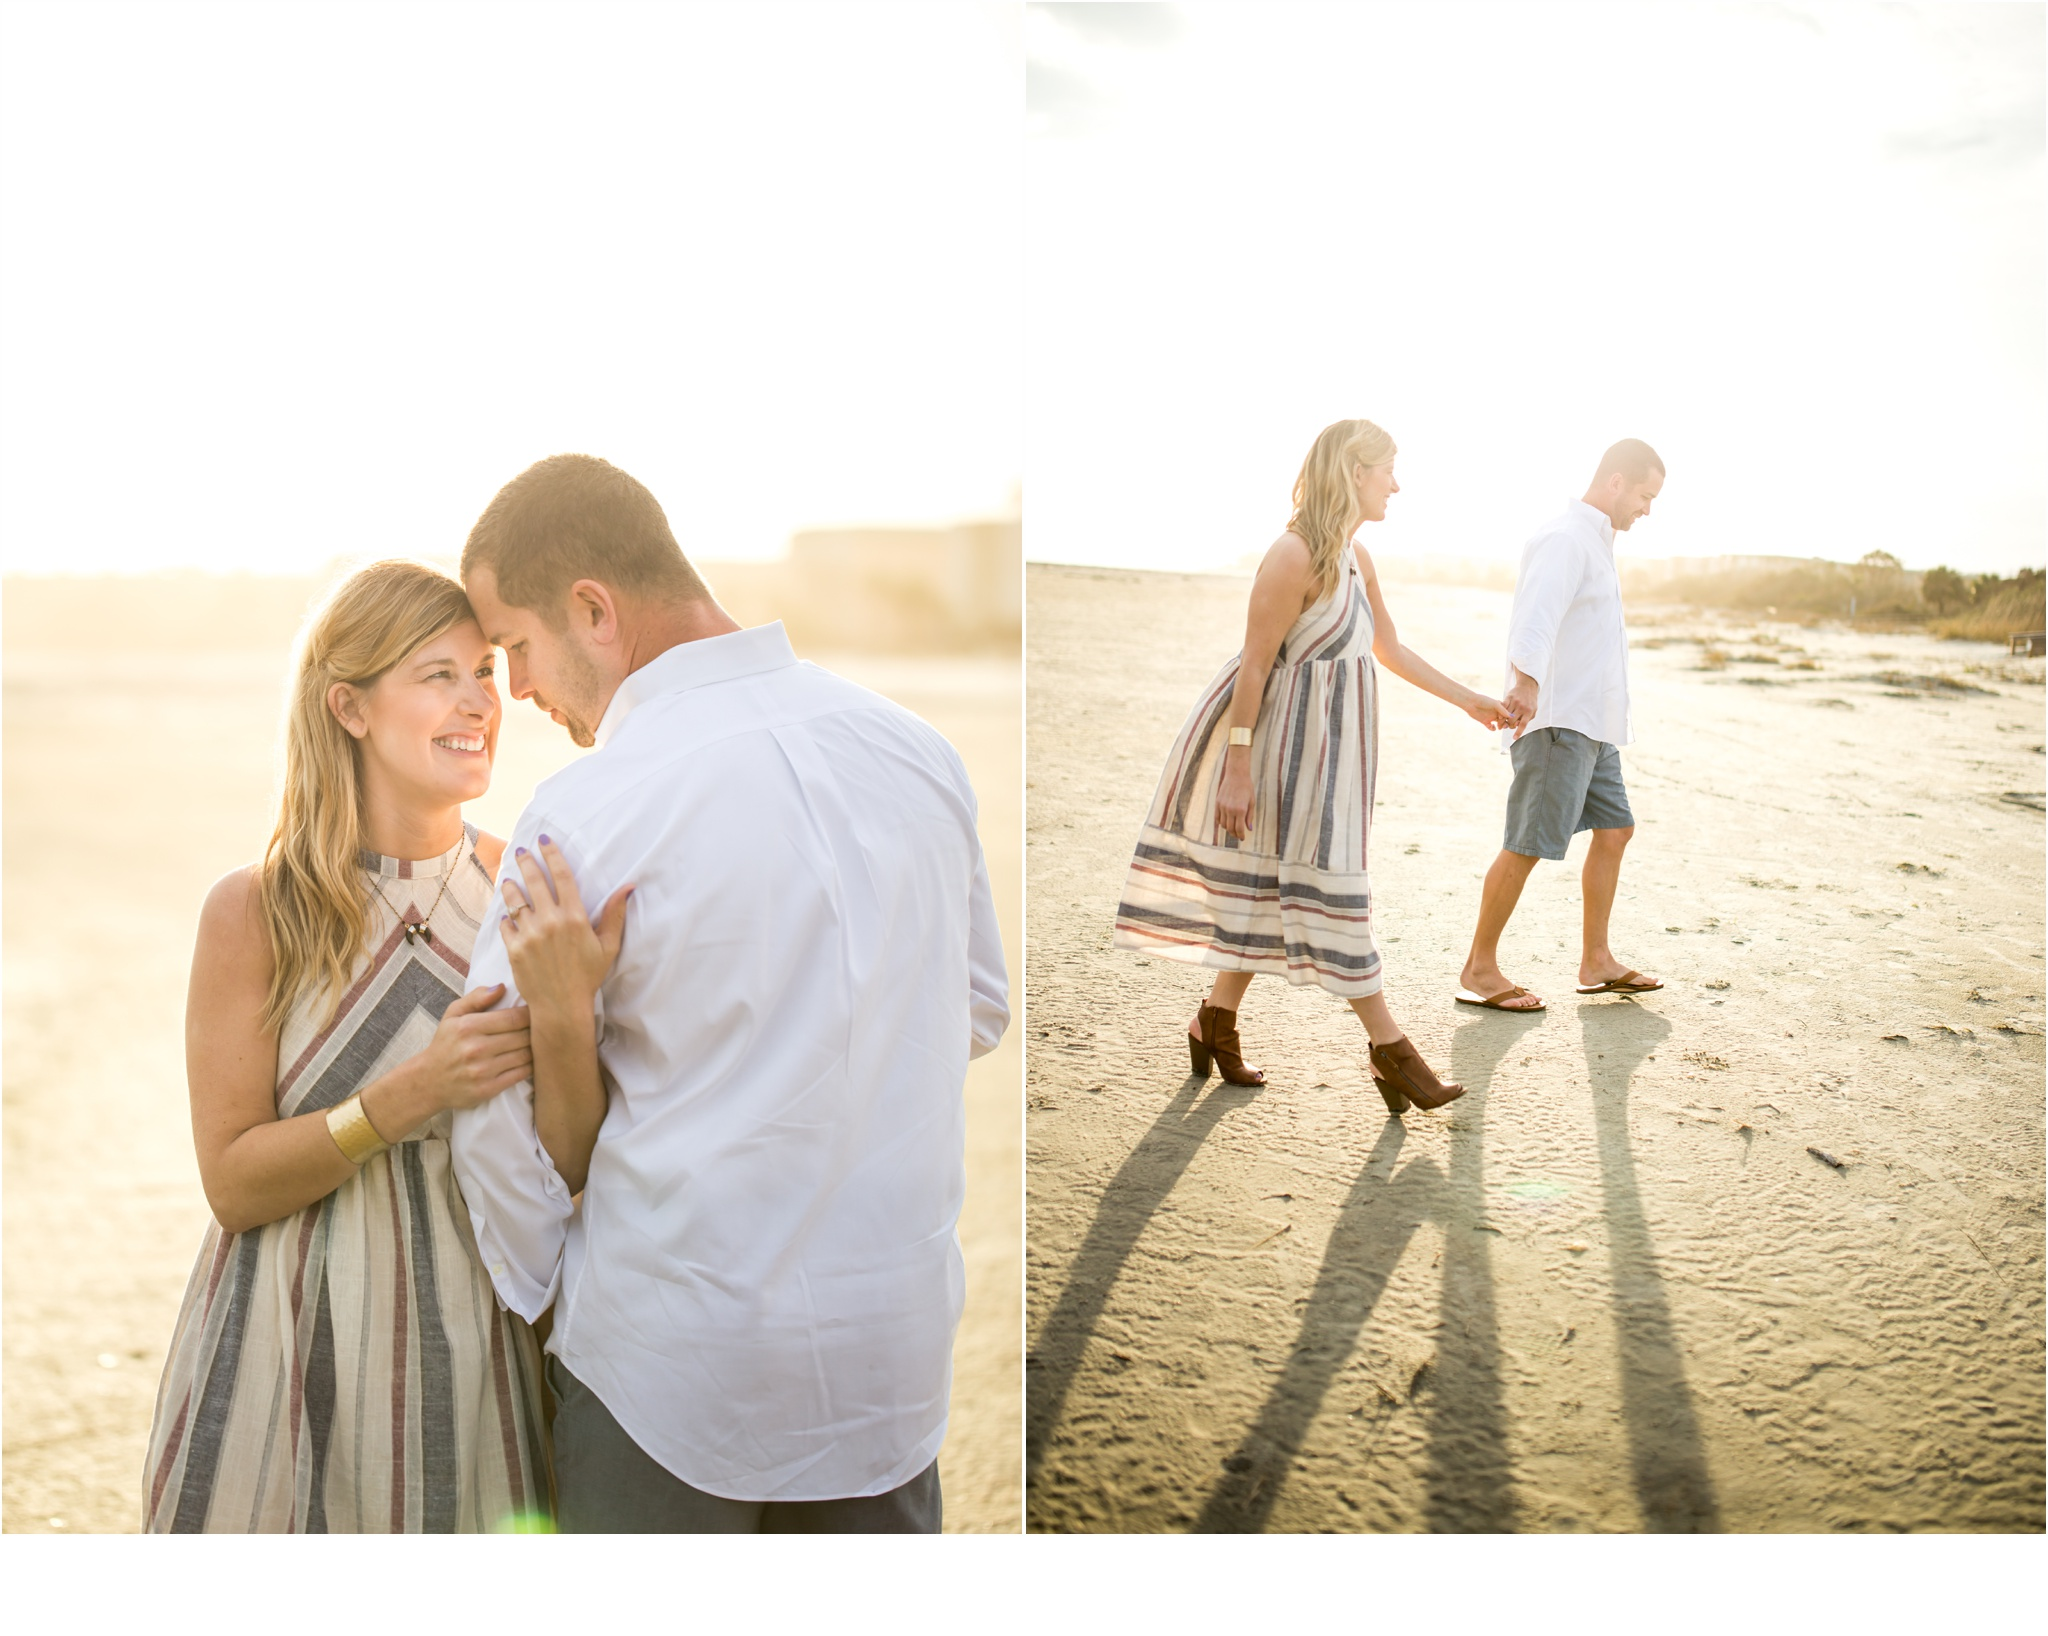 Rainey_Gregg_Photography_St._Simons_Island_Georgia_California_Wedding_Portrait_Photography_0558.jpg